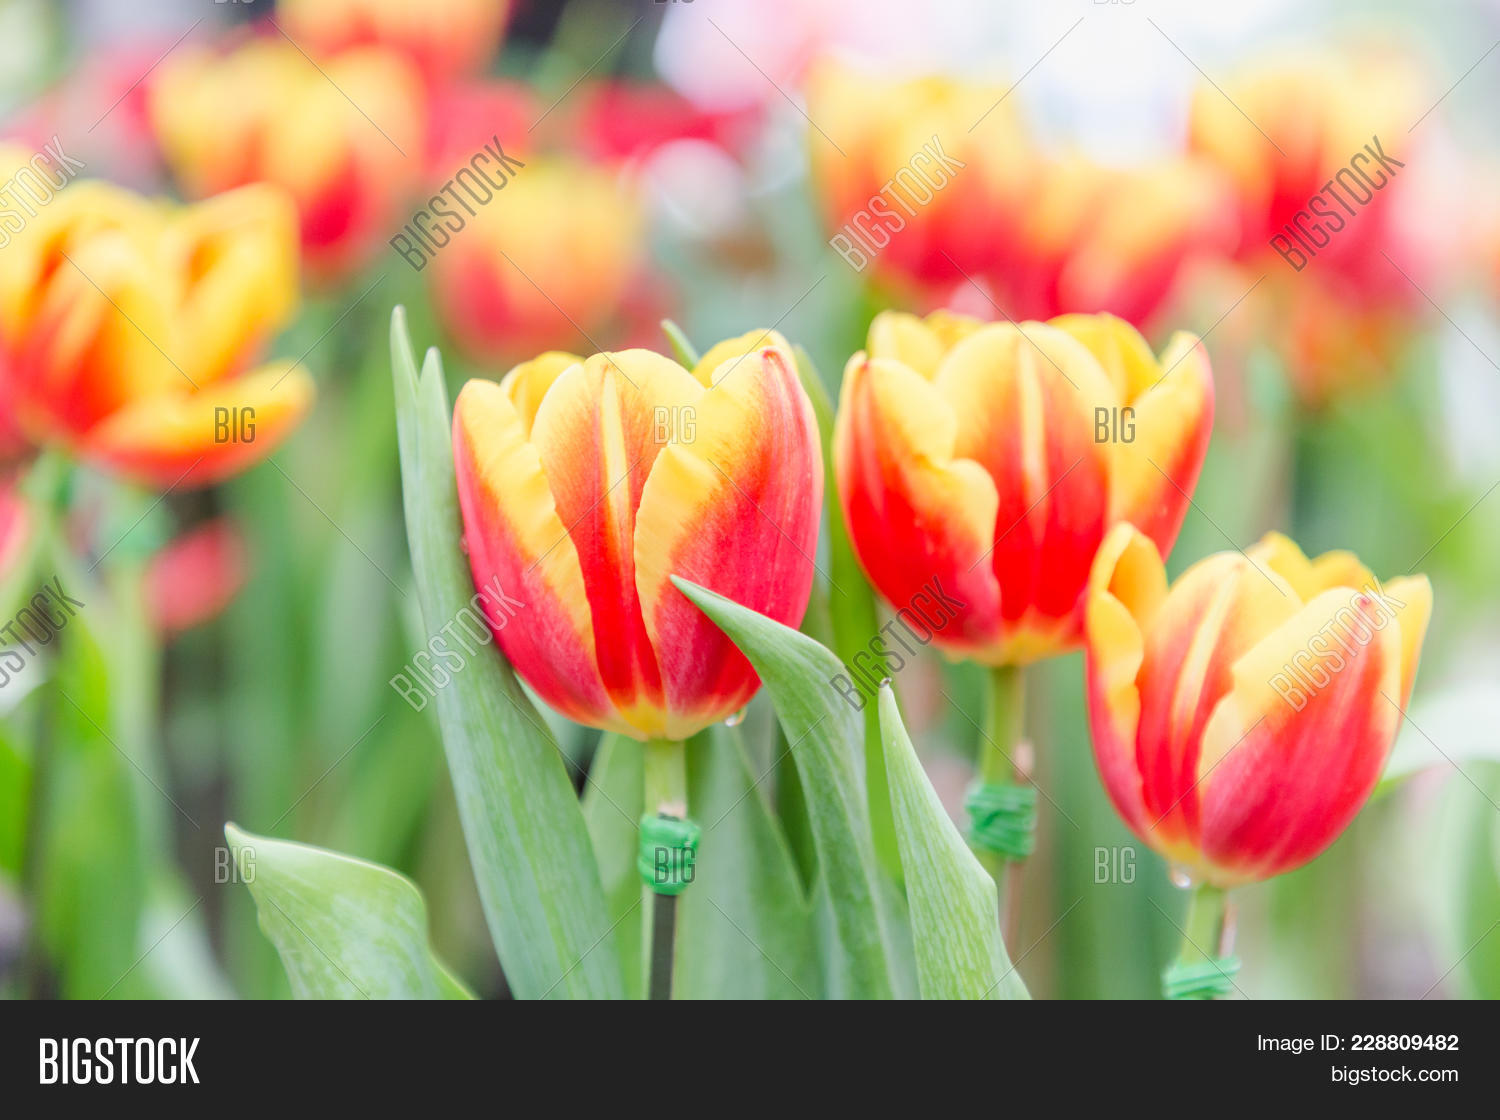 Tulip flower image photo free trial bigstock tulip flower beautiful tulips flower in tulip field at winter or spring day colorful izmirmasajfo